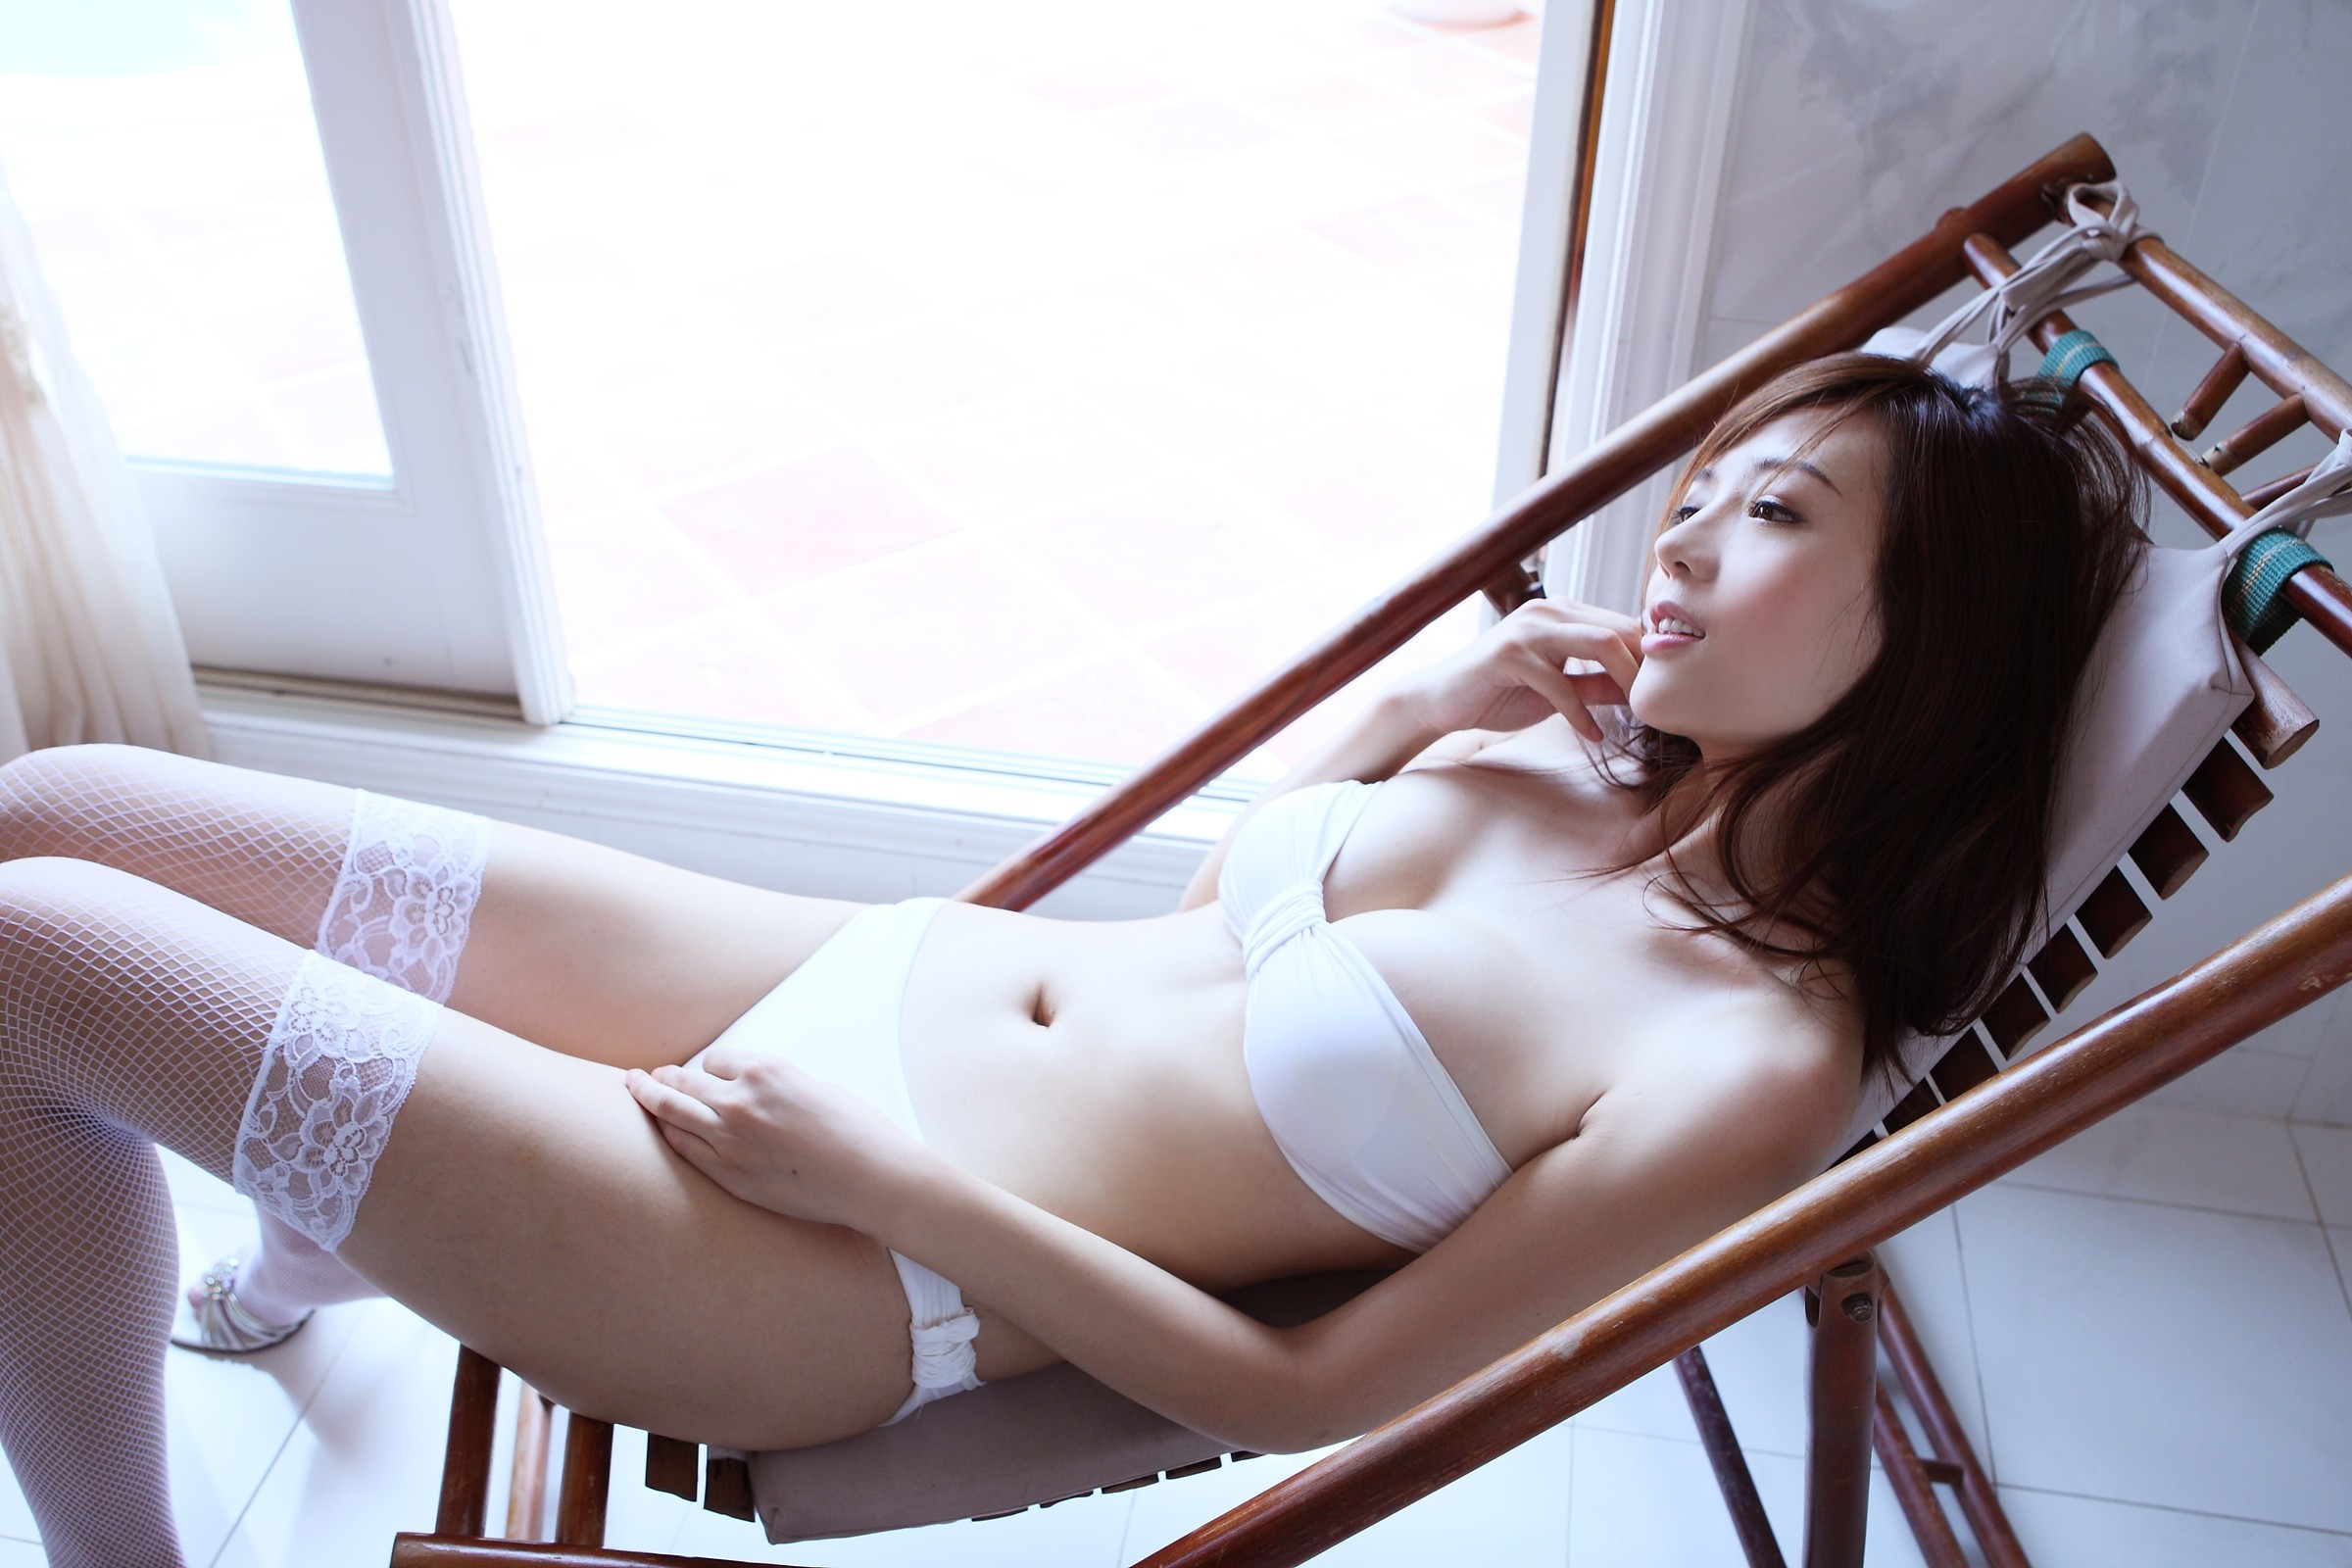 woman stockings Japanese asians